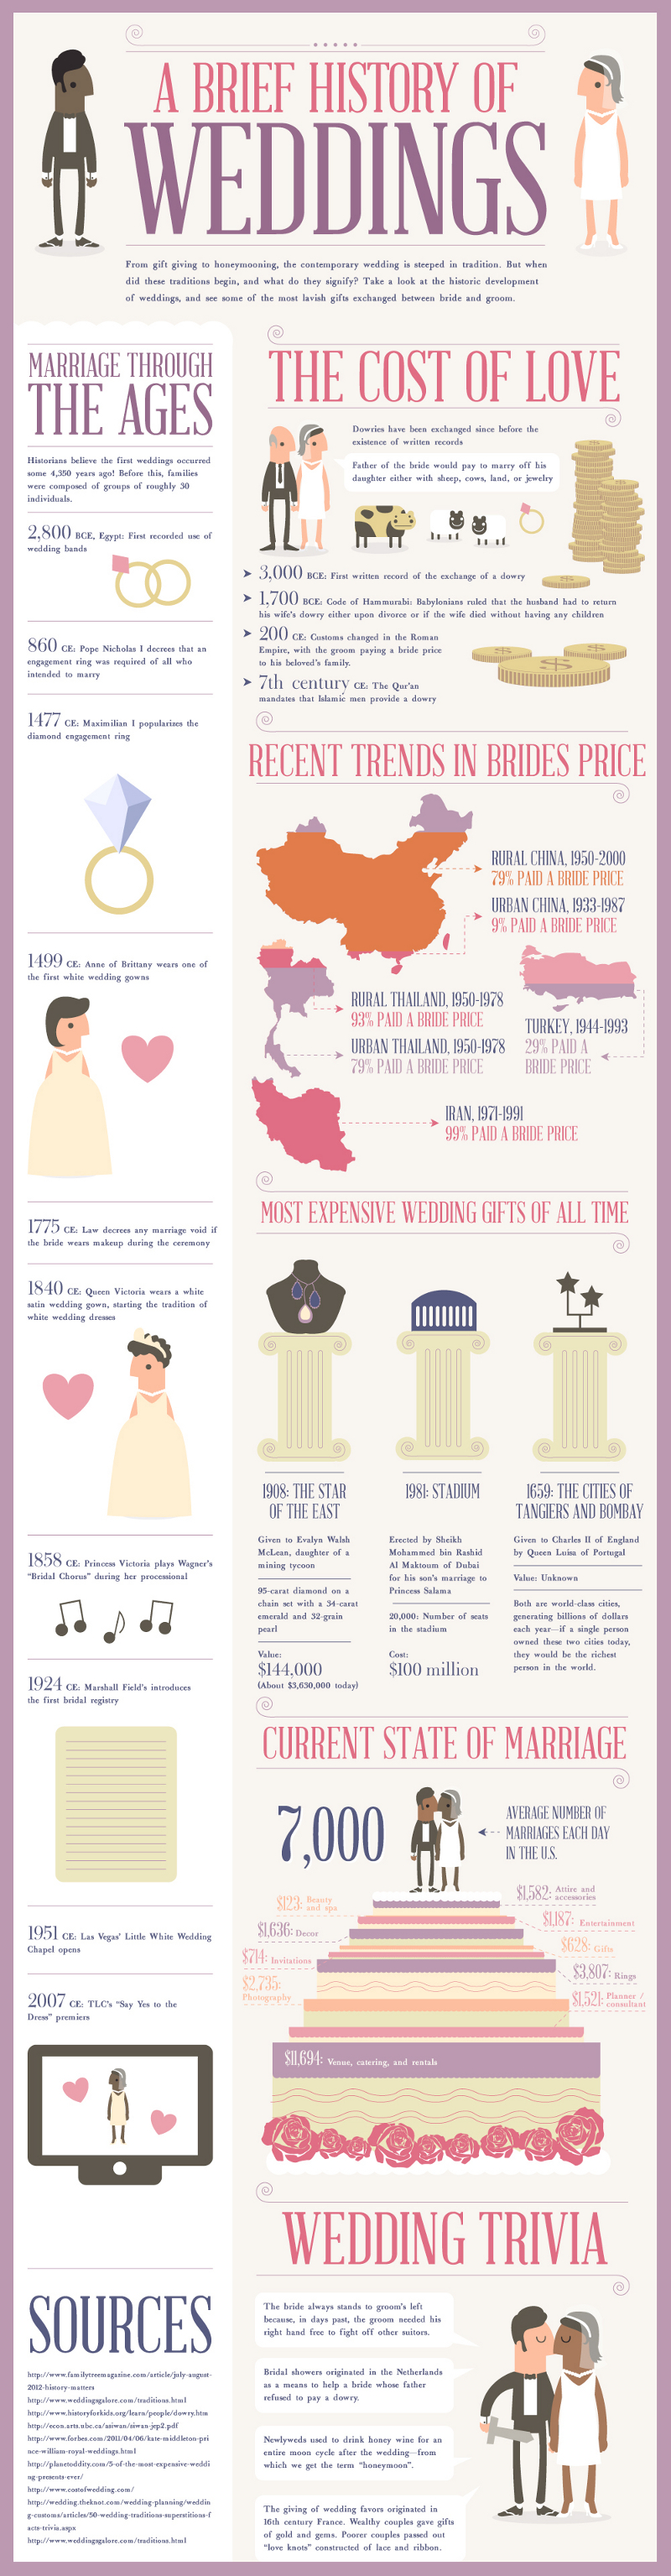 1 Year Wedding Gift Etiquette : History of Weddings and Timeline